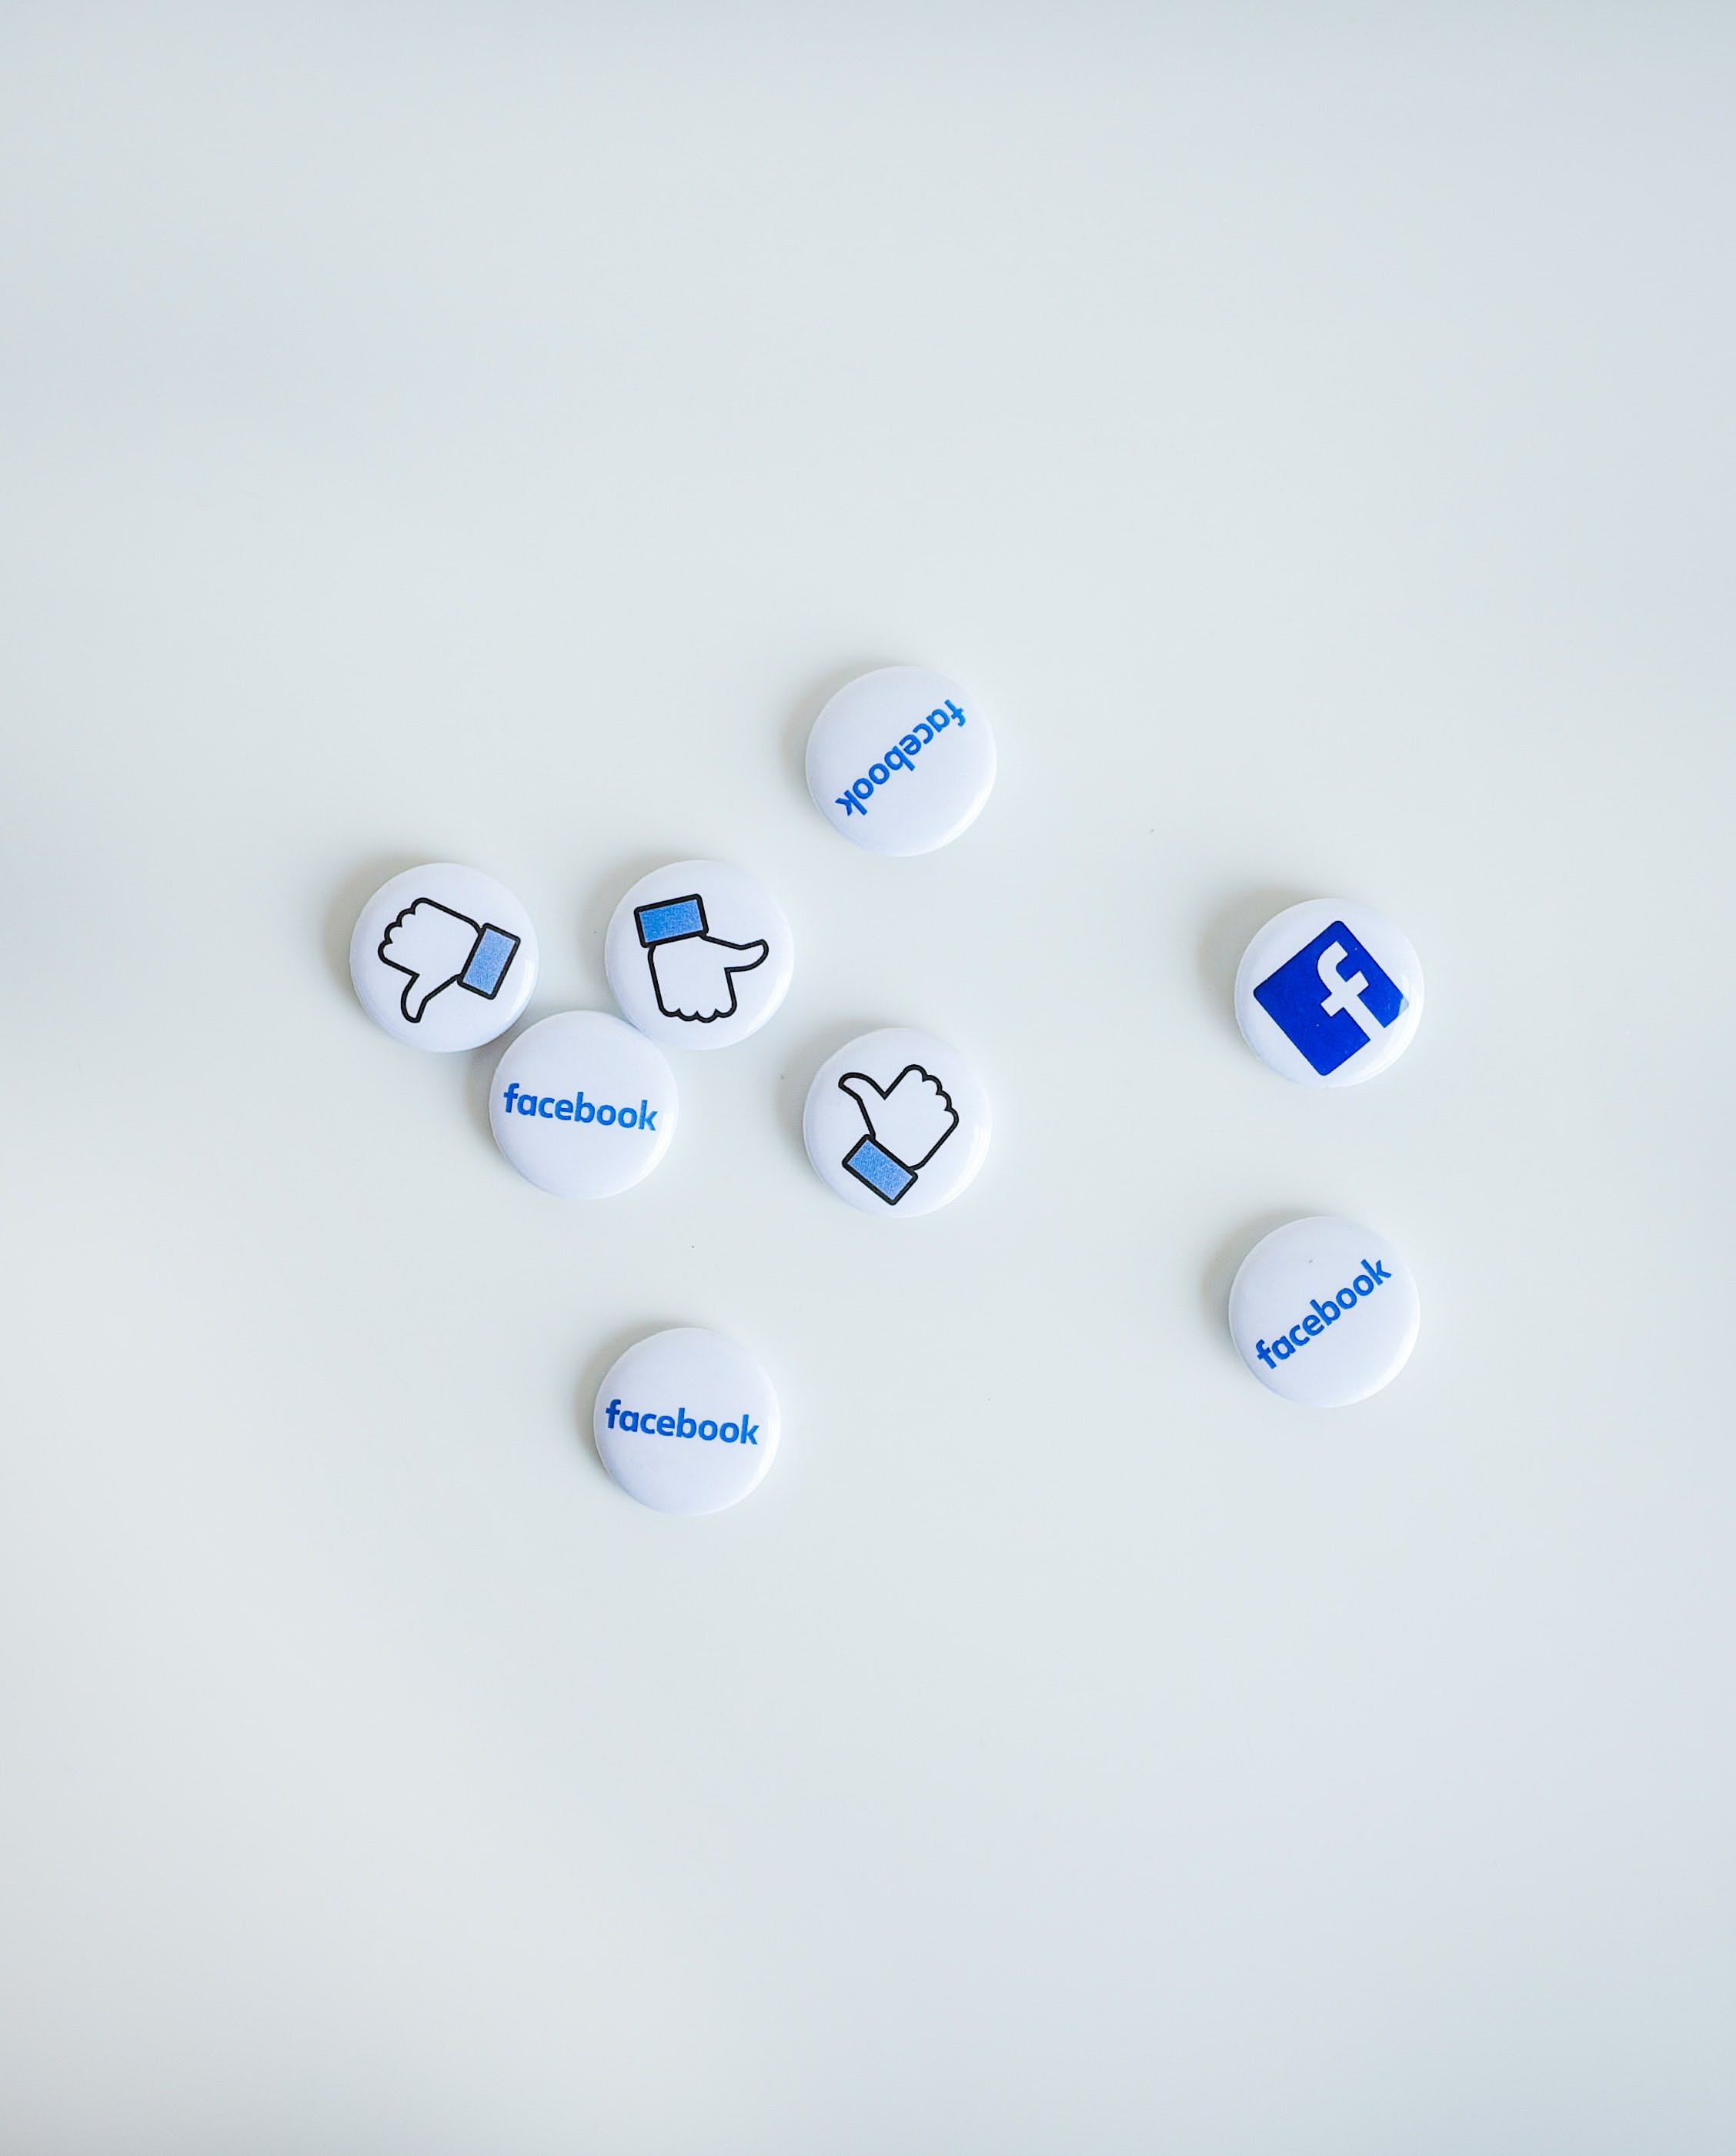 facebook logo and like button on white thumbnails on a white table